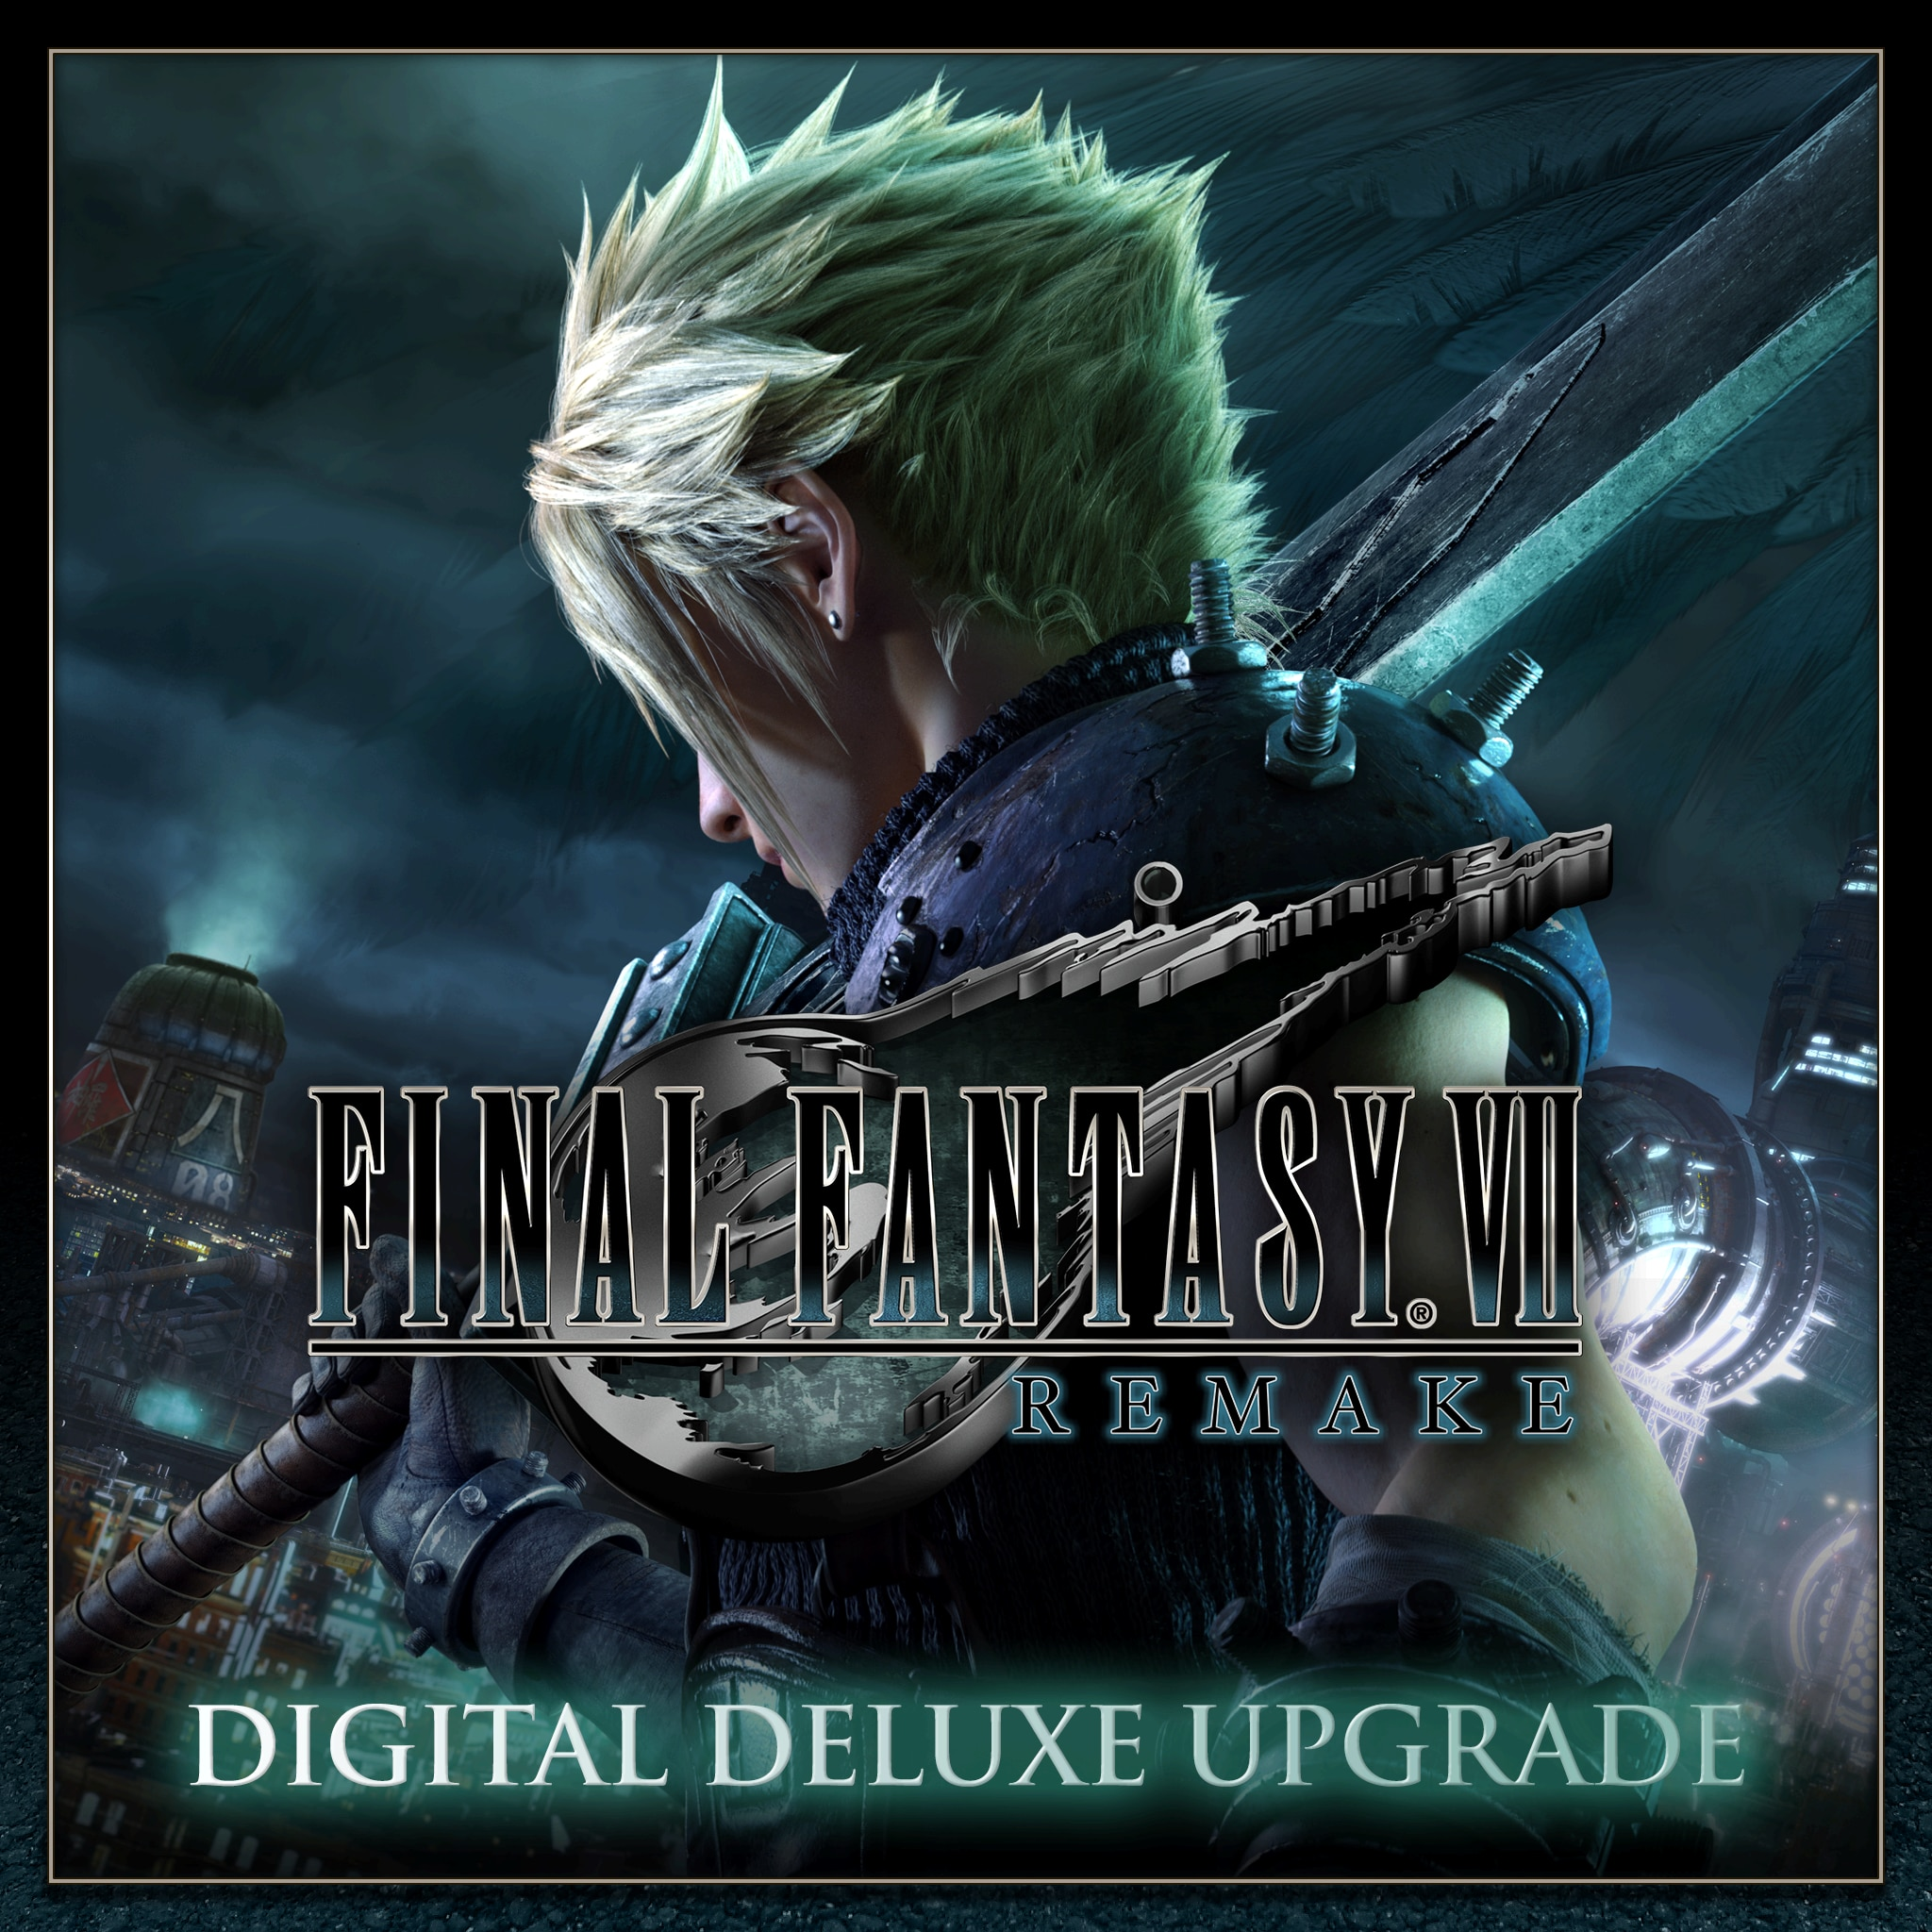 FINAL FANTASY VII REMAKE DIGITAL DELUXE UPGRADE